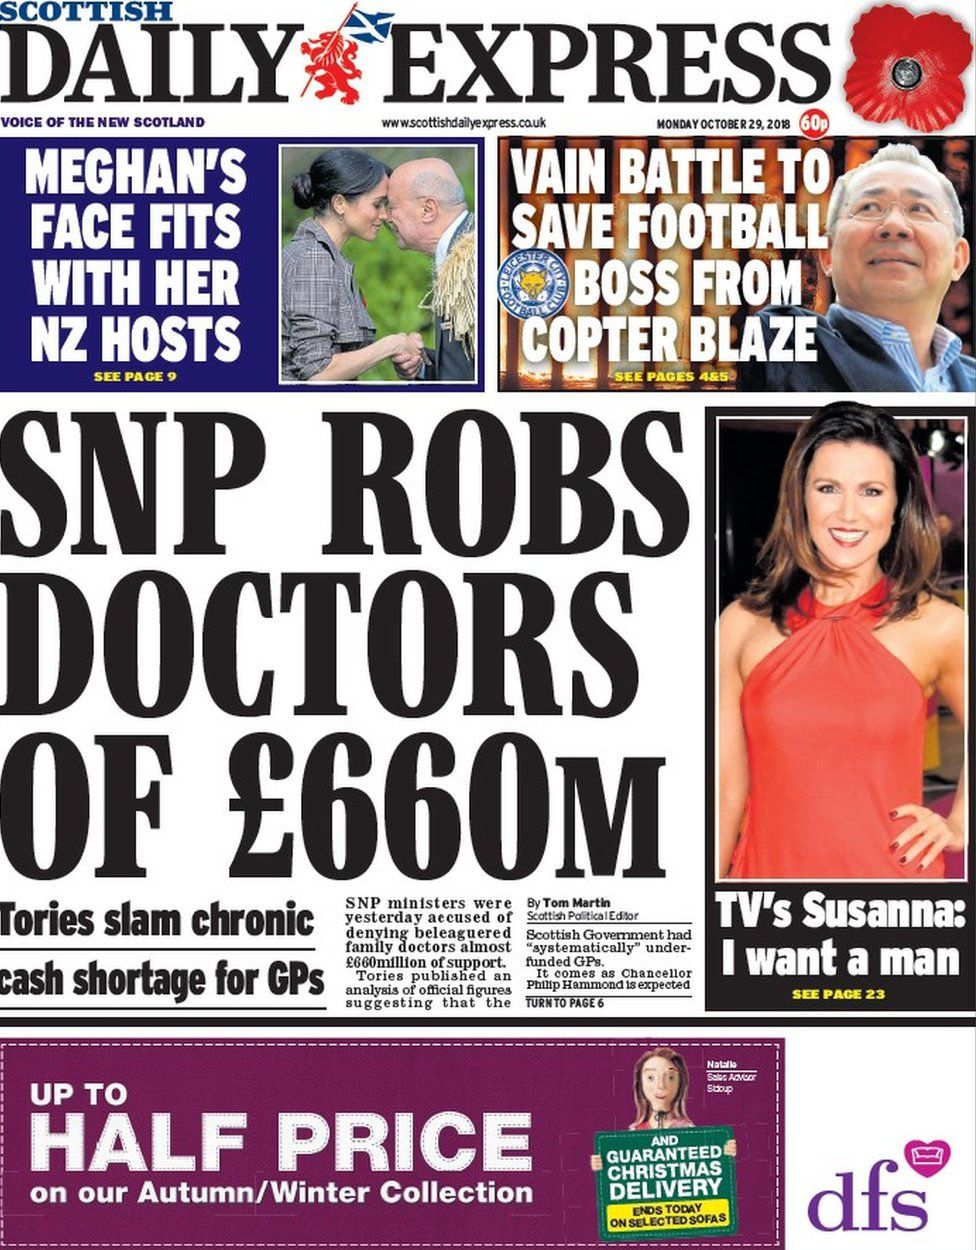 The Scottish Daily Express